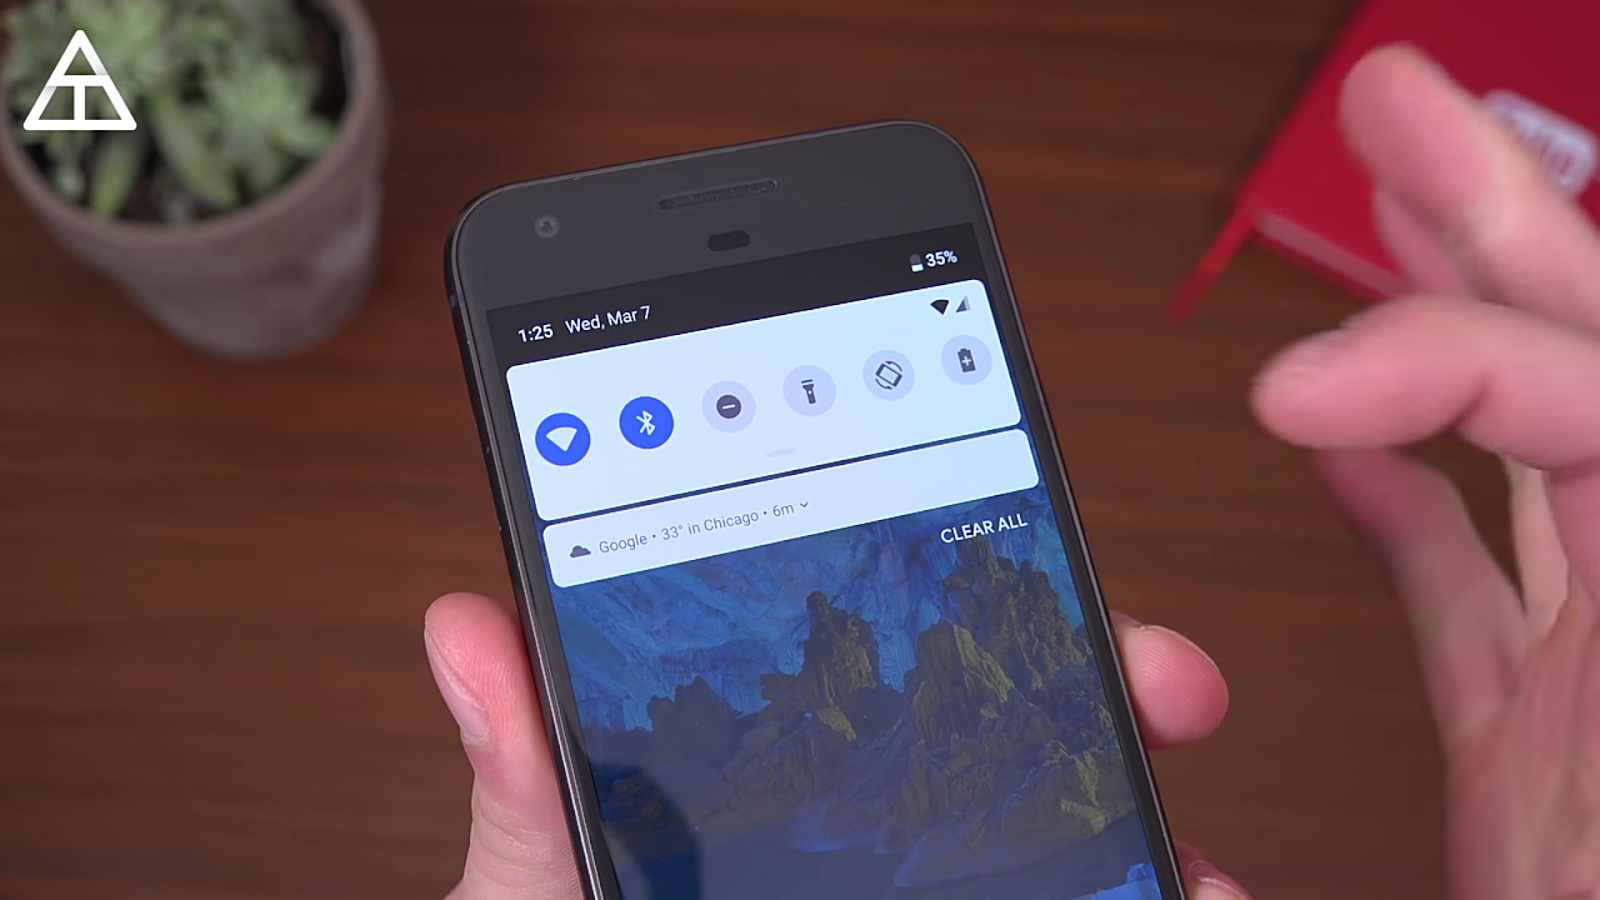 The round notifications toggles with grey and blue color accents